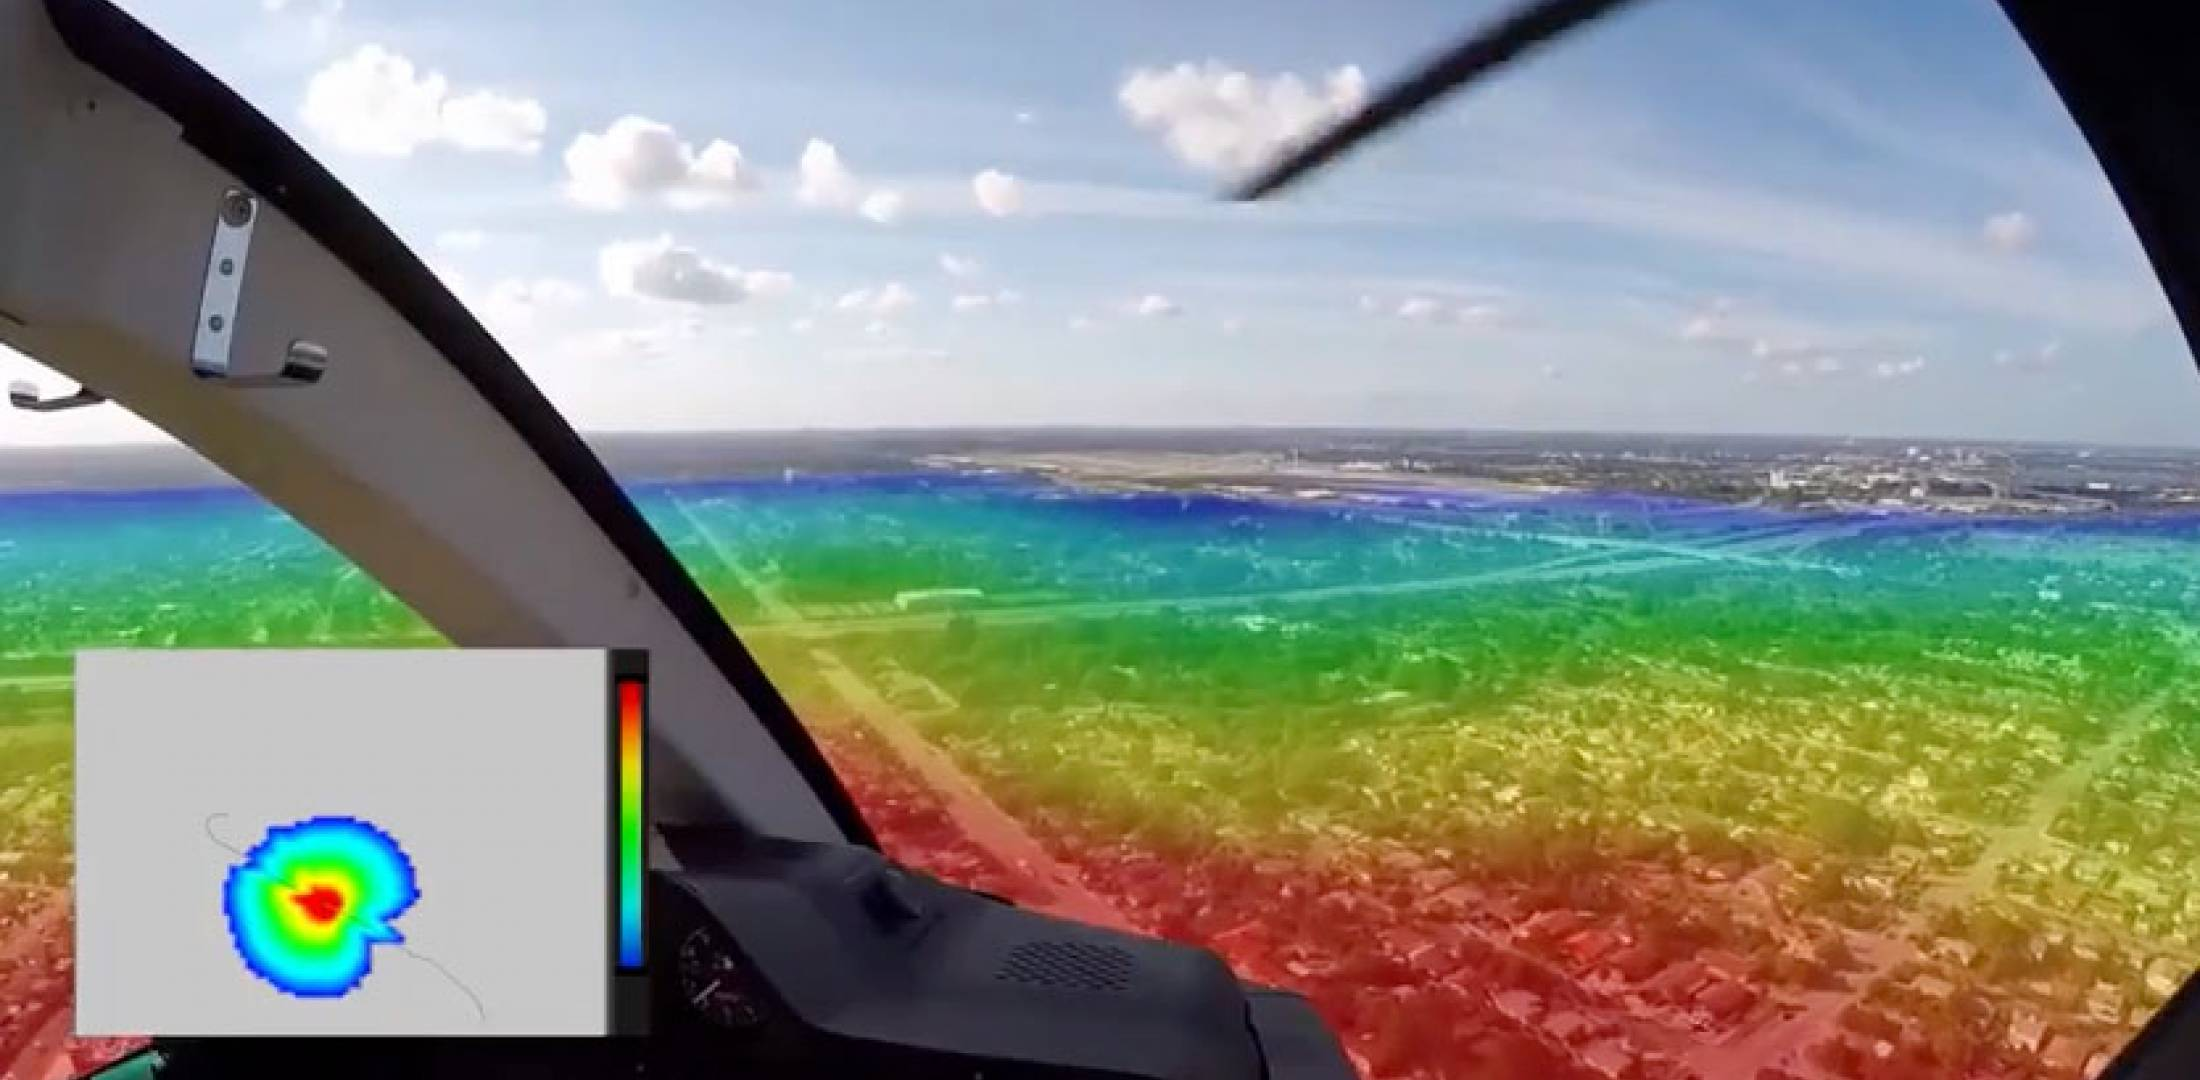 A video showing an experimental system that provides the real-time noise signature pattern for helicopters was played at the Fly Neighborly session yesterday here at Heli-Expo.